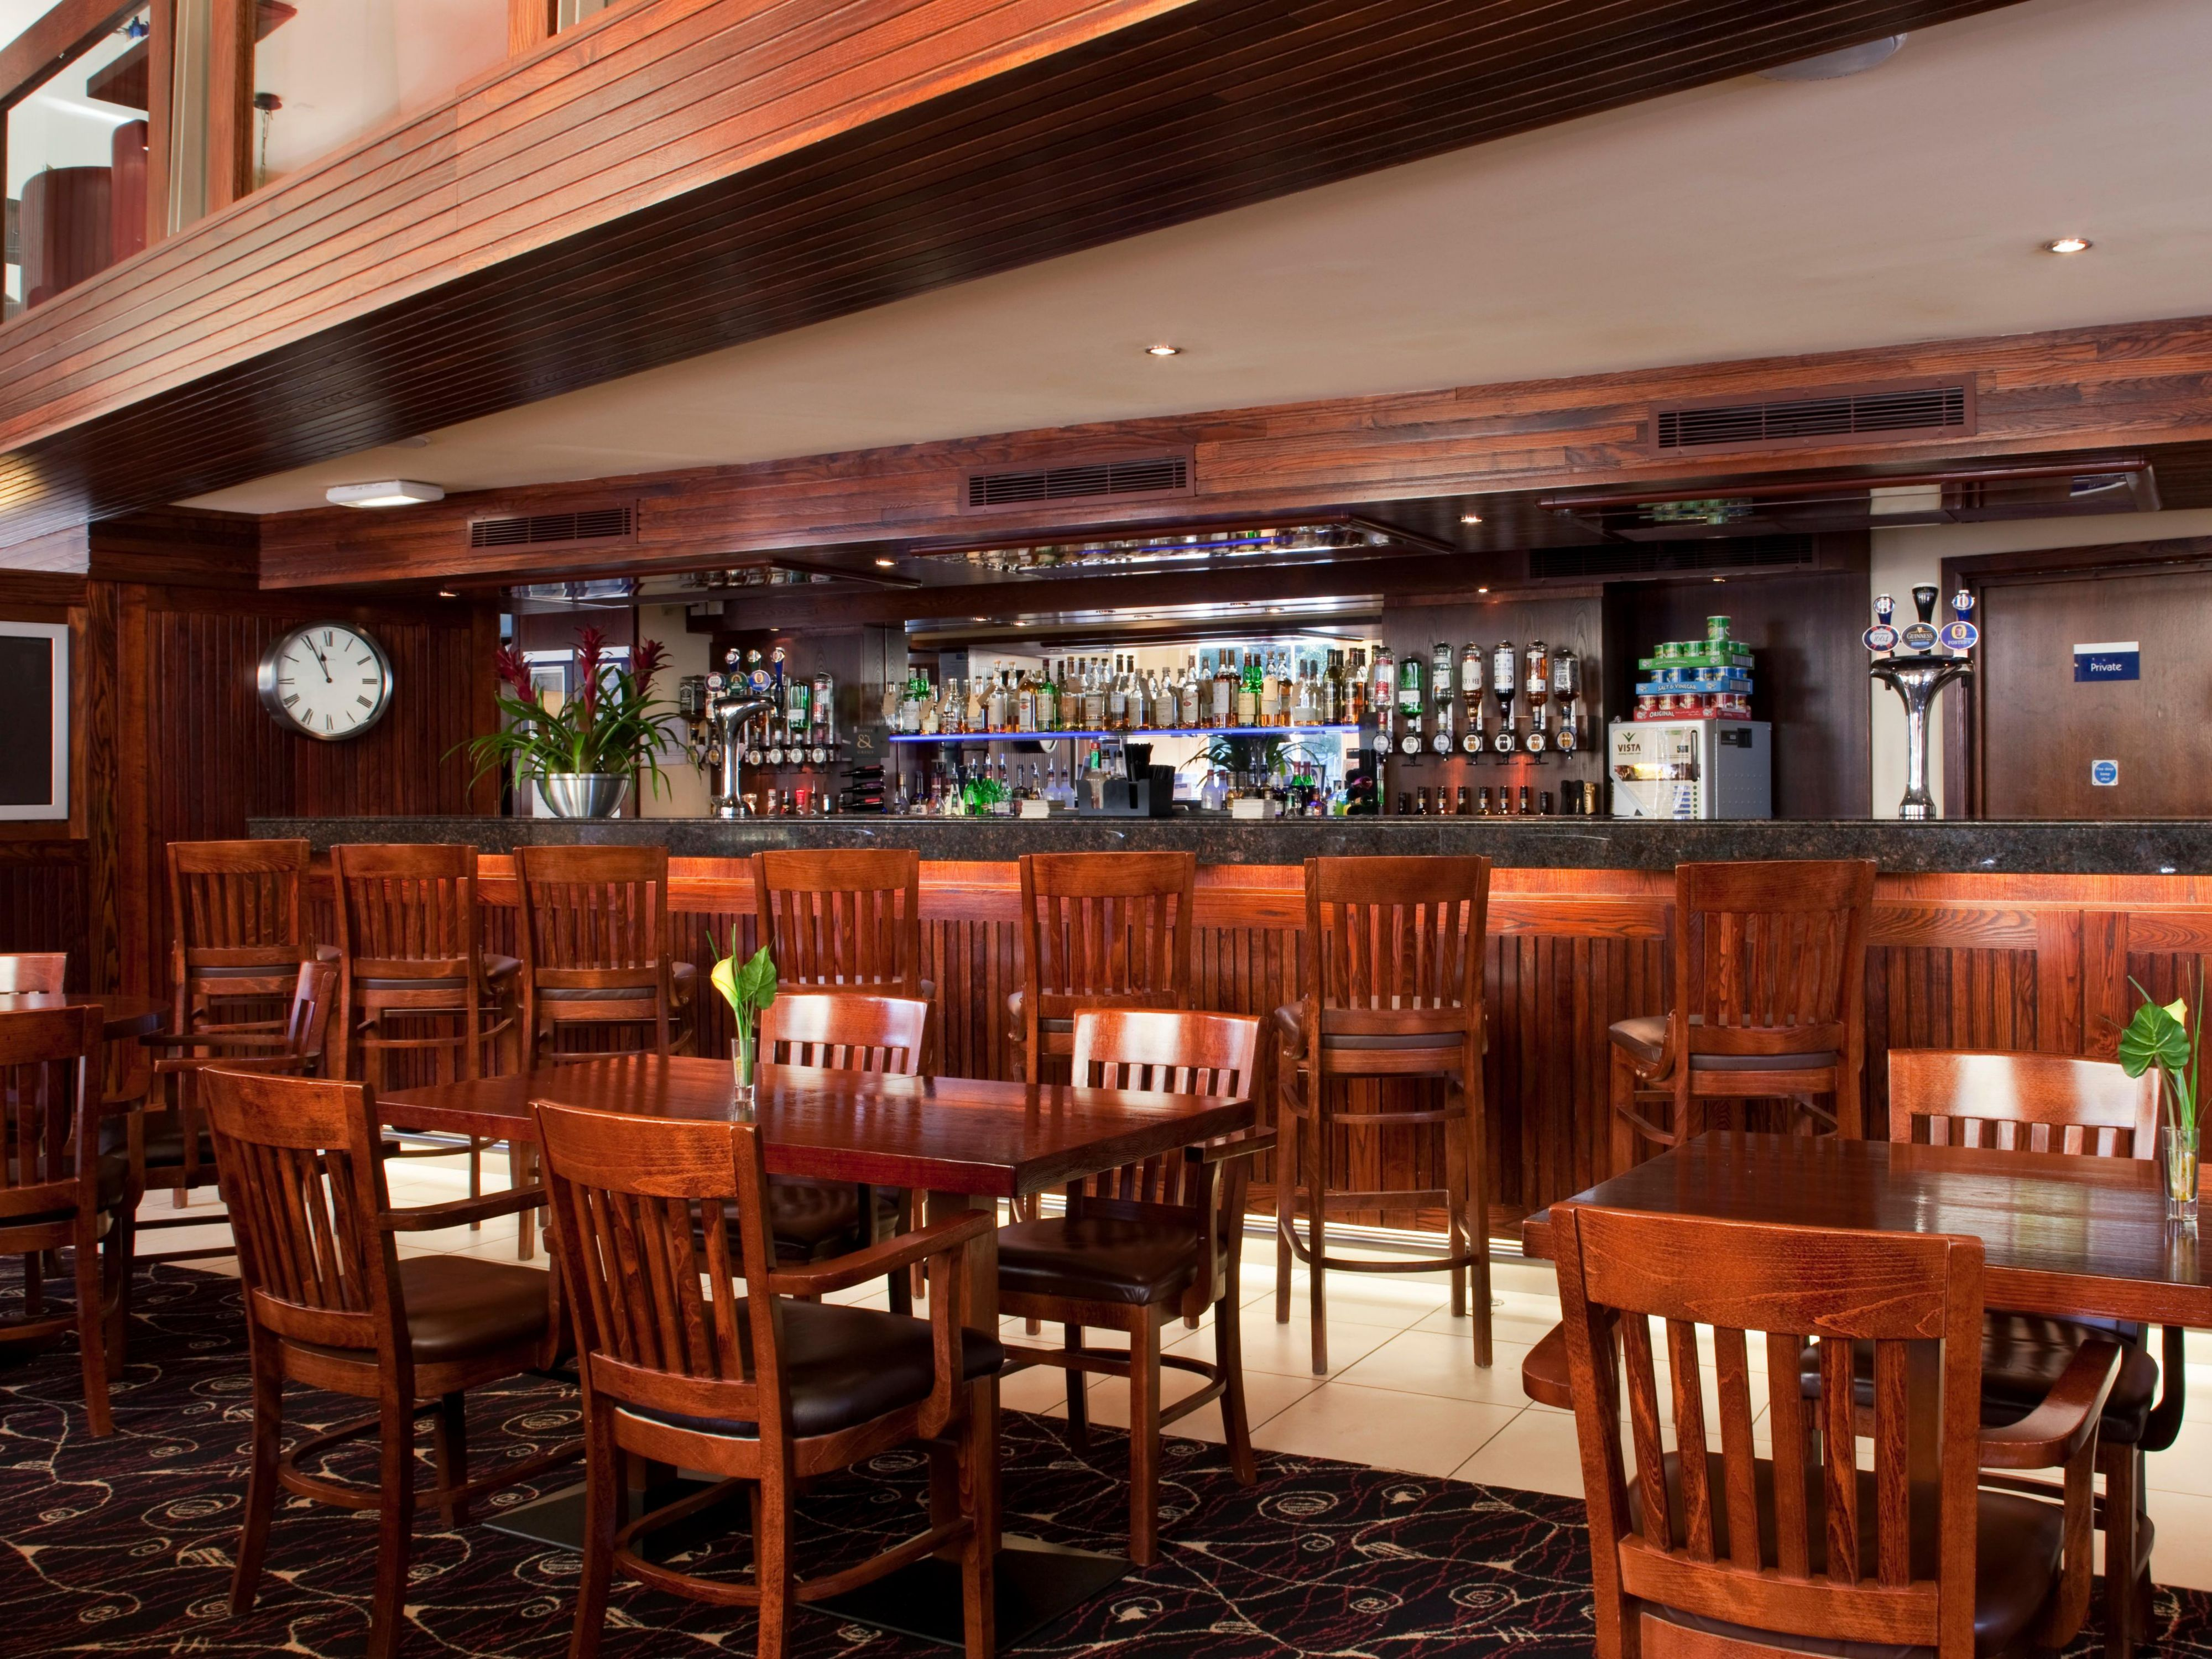 Bar and Lounge with a wide selection of drinks including whiskeys